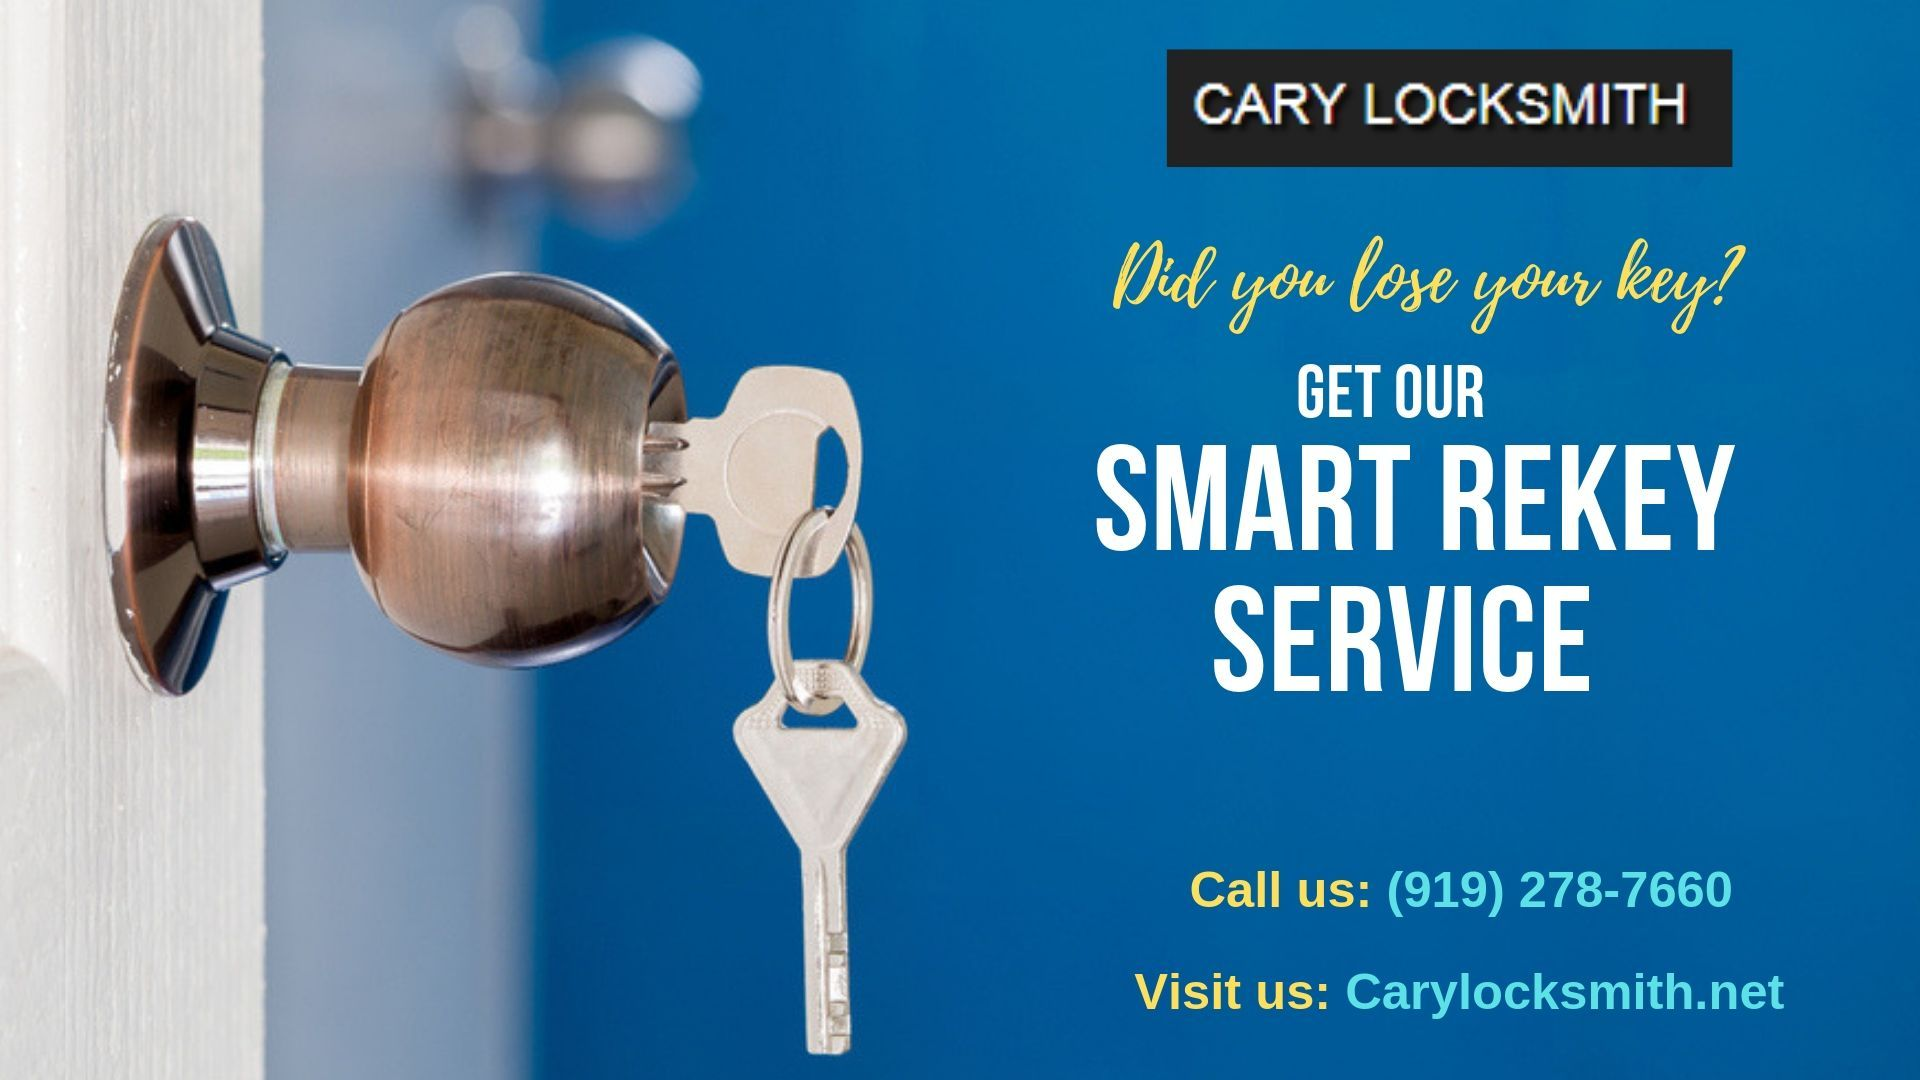 Did you lose your key at cary locksmith we offer expert